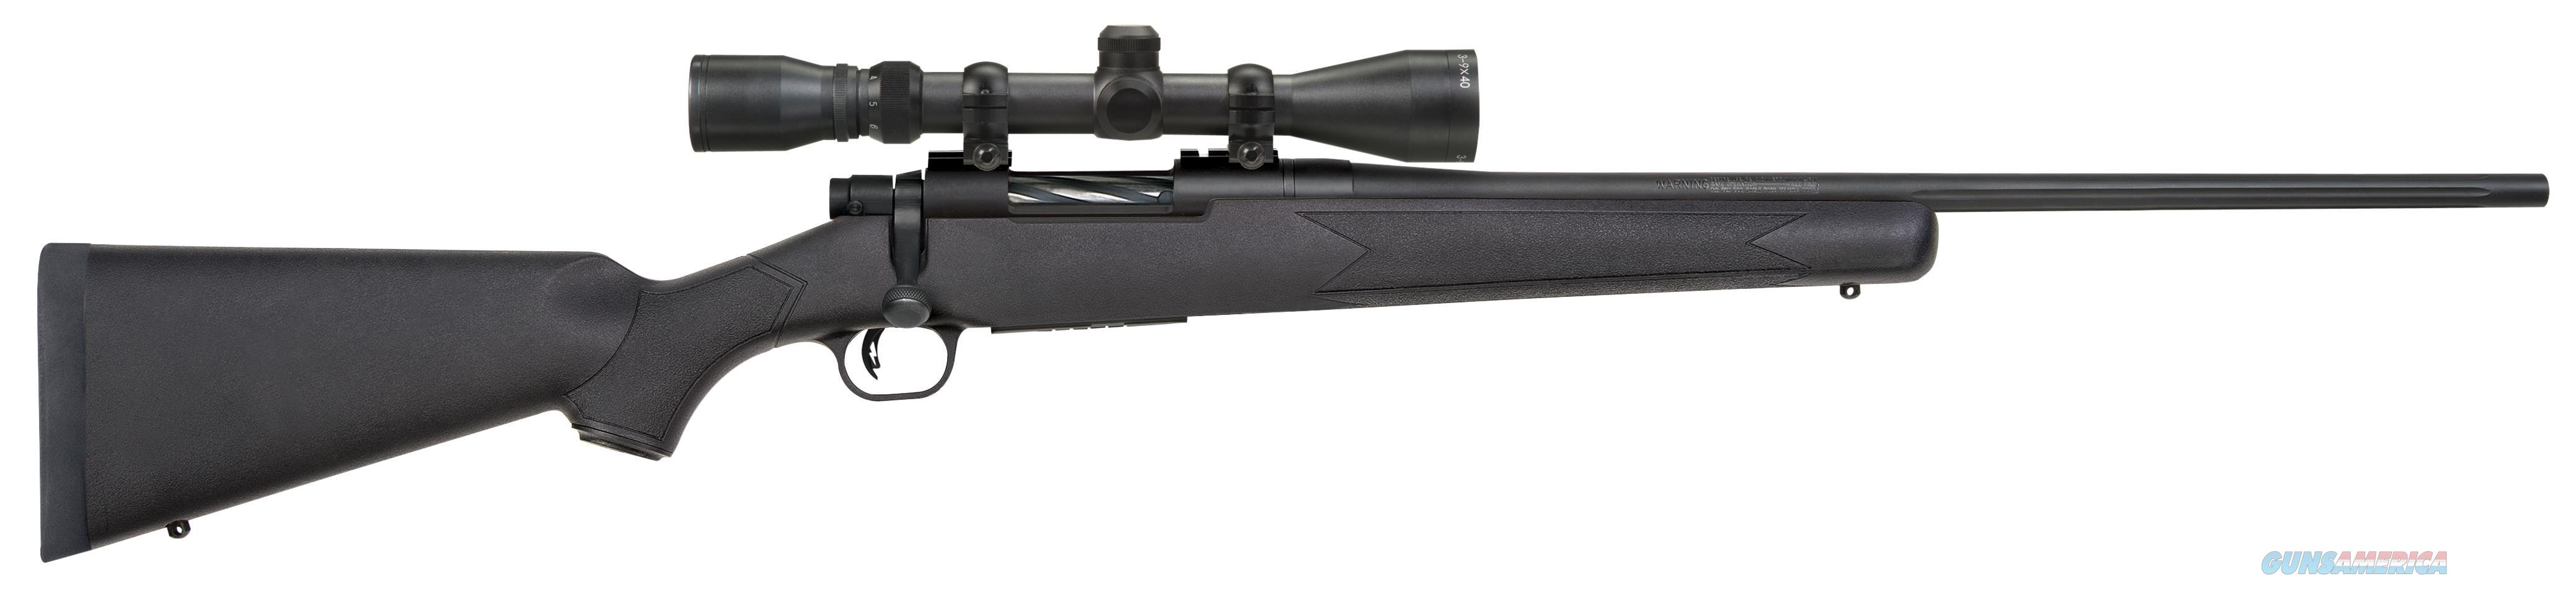 "Mossberg 27931 Patriot With Scope Bolt 243 Win 22"" 5+1 Synthetic Black Stk Black 27931  Guns > Rifles > MN Misc Rifles"